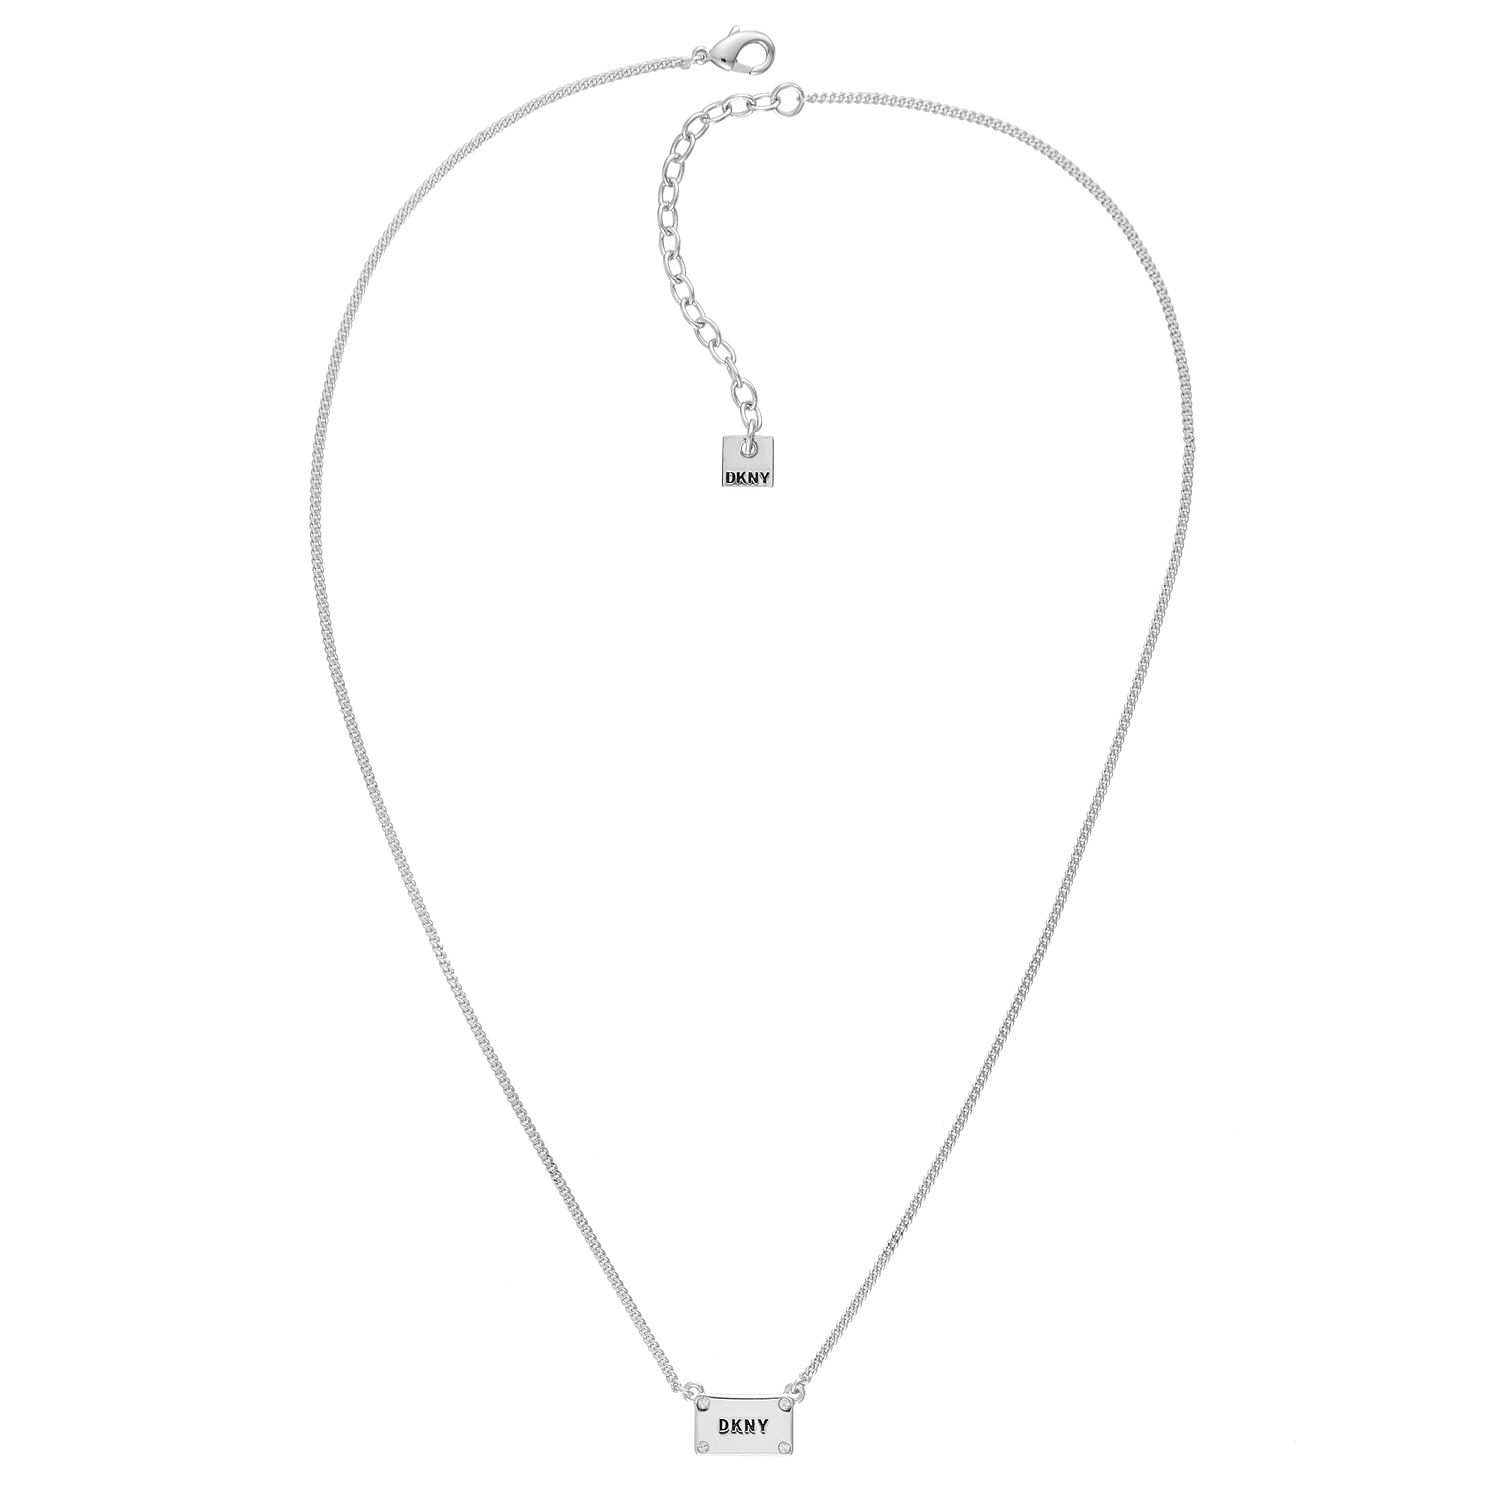 DKNY Logo Plackard Rhodium Plated Crystal Necklace - Product number 5888948